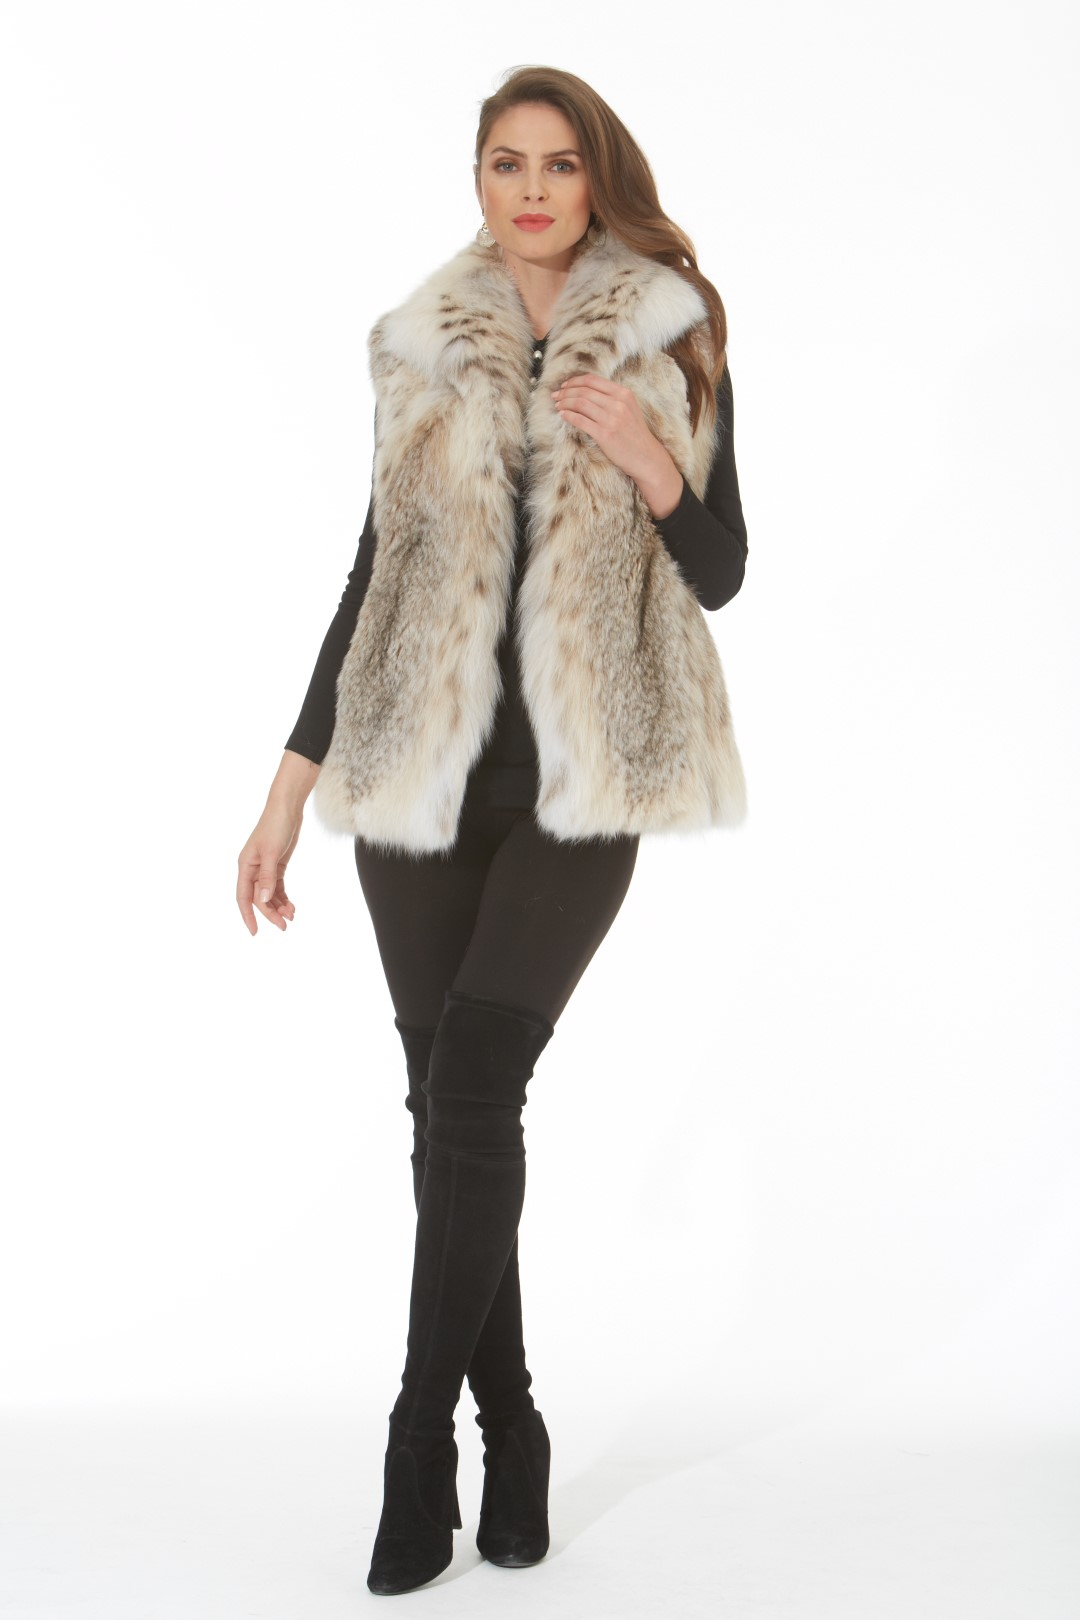 canadian lynx vest u2013 wing collar madison avenue mall furs